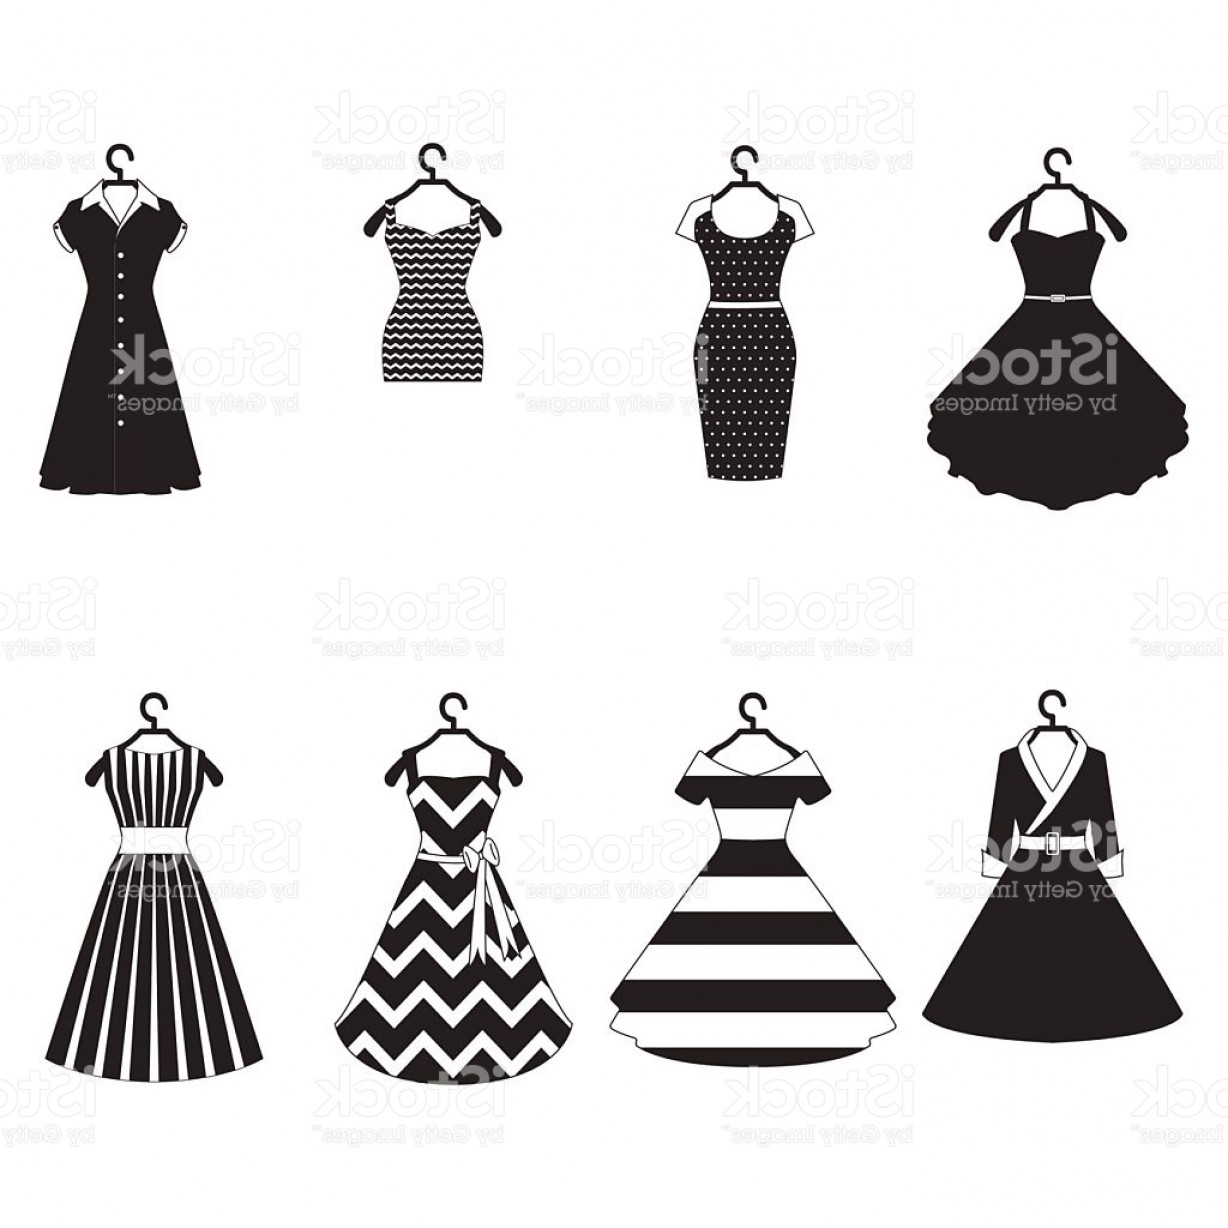 Vector Images Of Black And White Dresses: Black And White Vintage Dresses Vector Set Gm